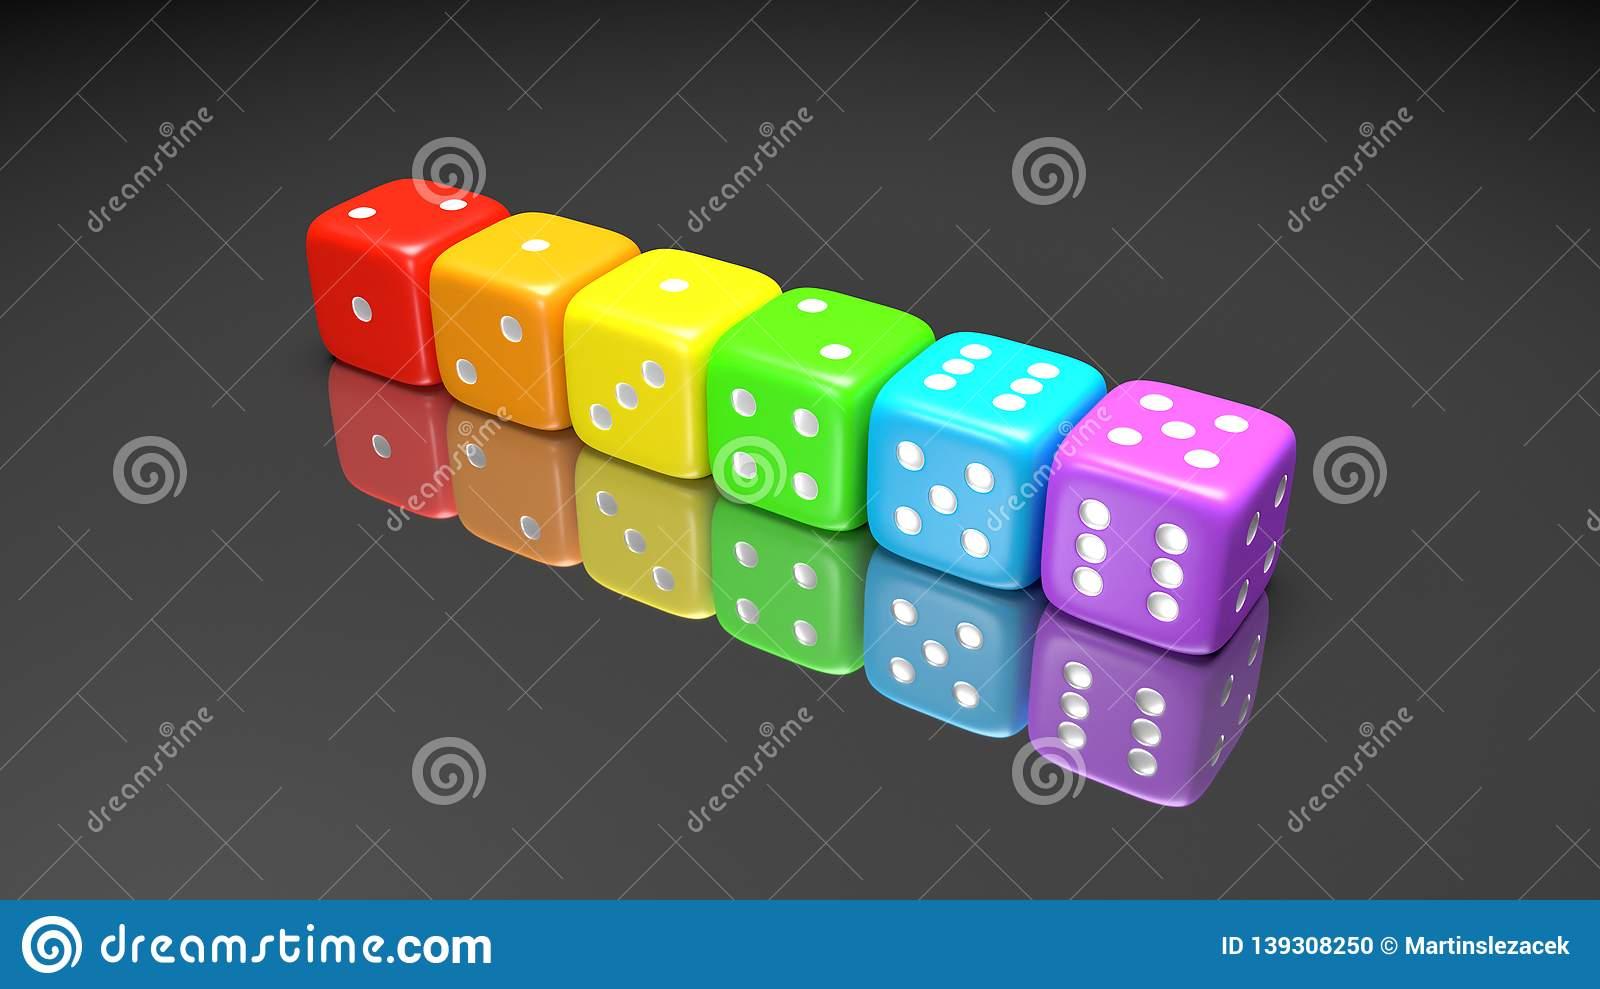 Set of rainbow colored dices on the gray background. Colorful play dice with numbers. Casino gamble playing tool. 3D render